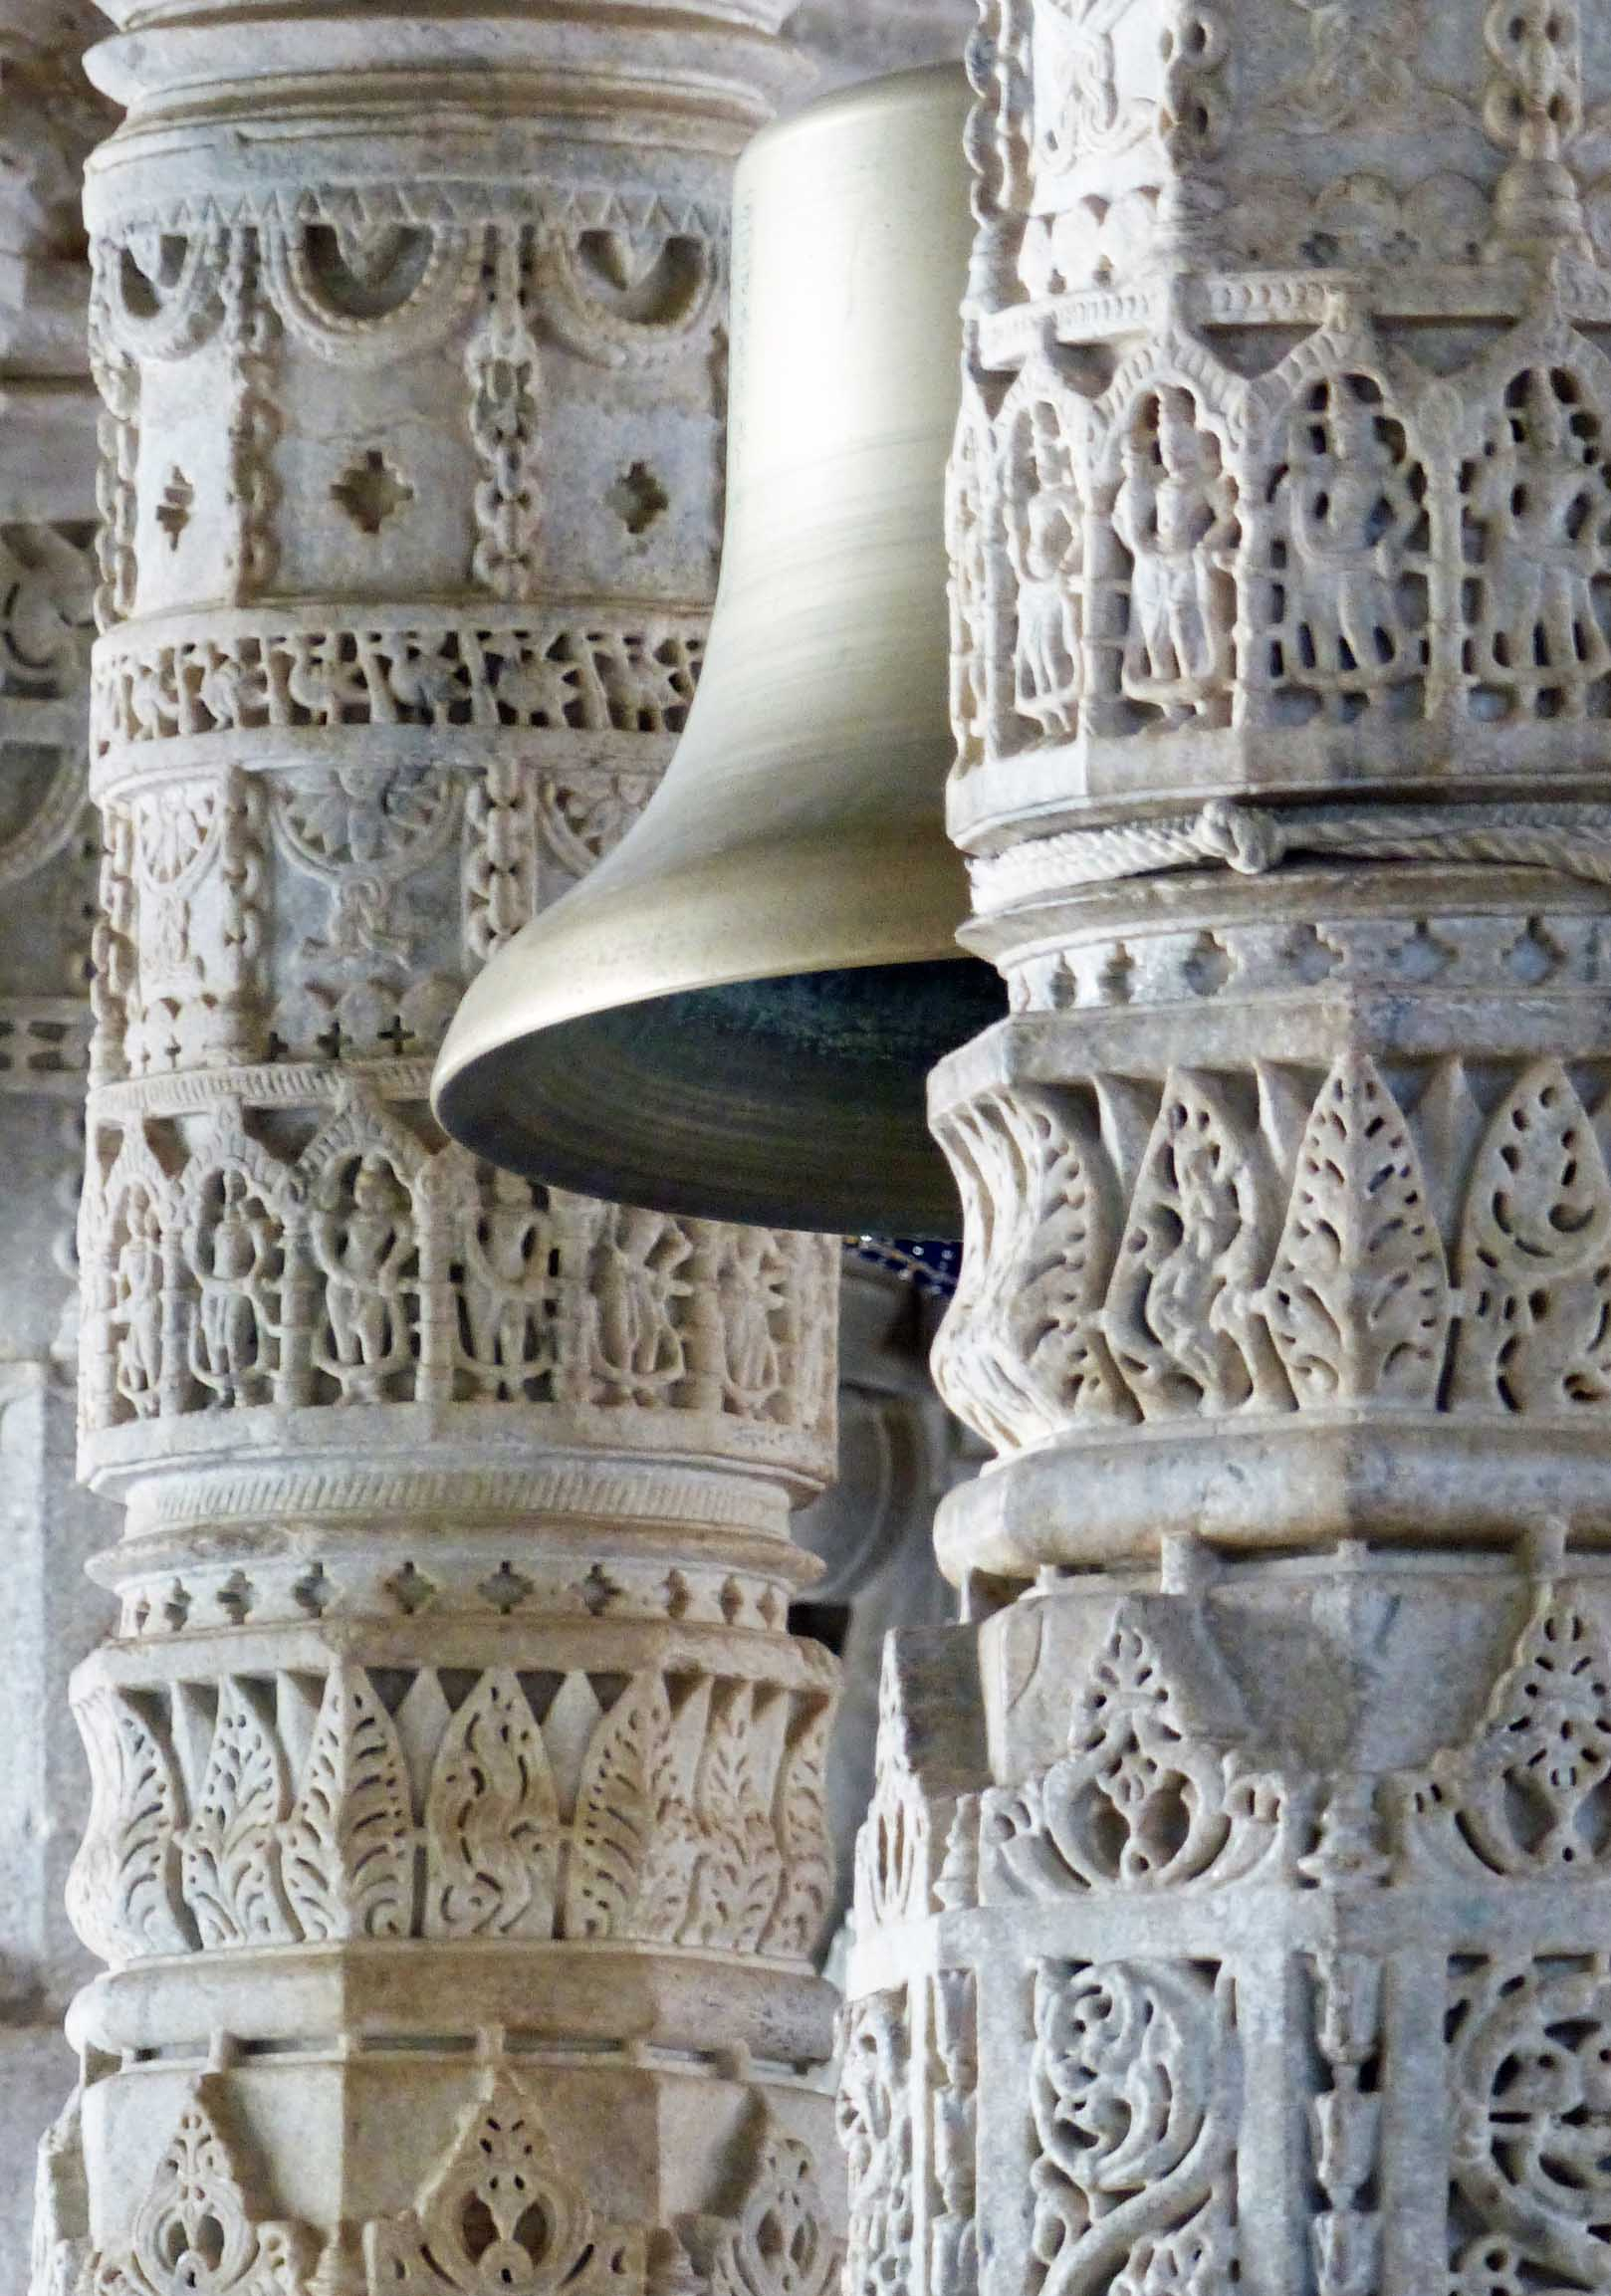 Ornate marble pillars and bell